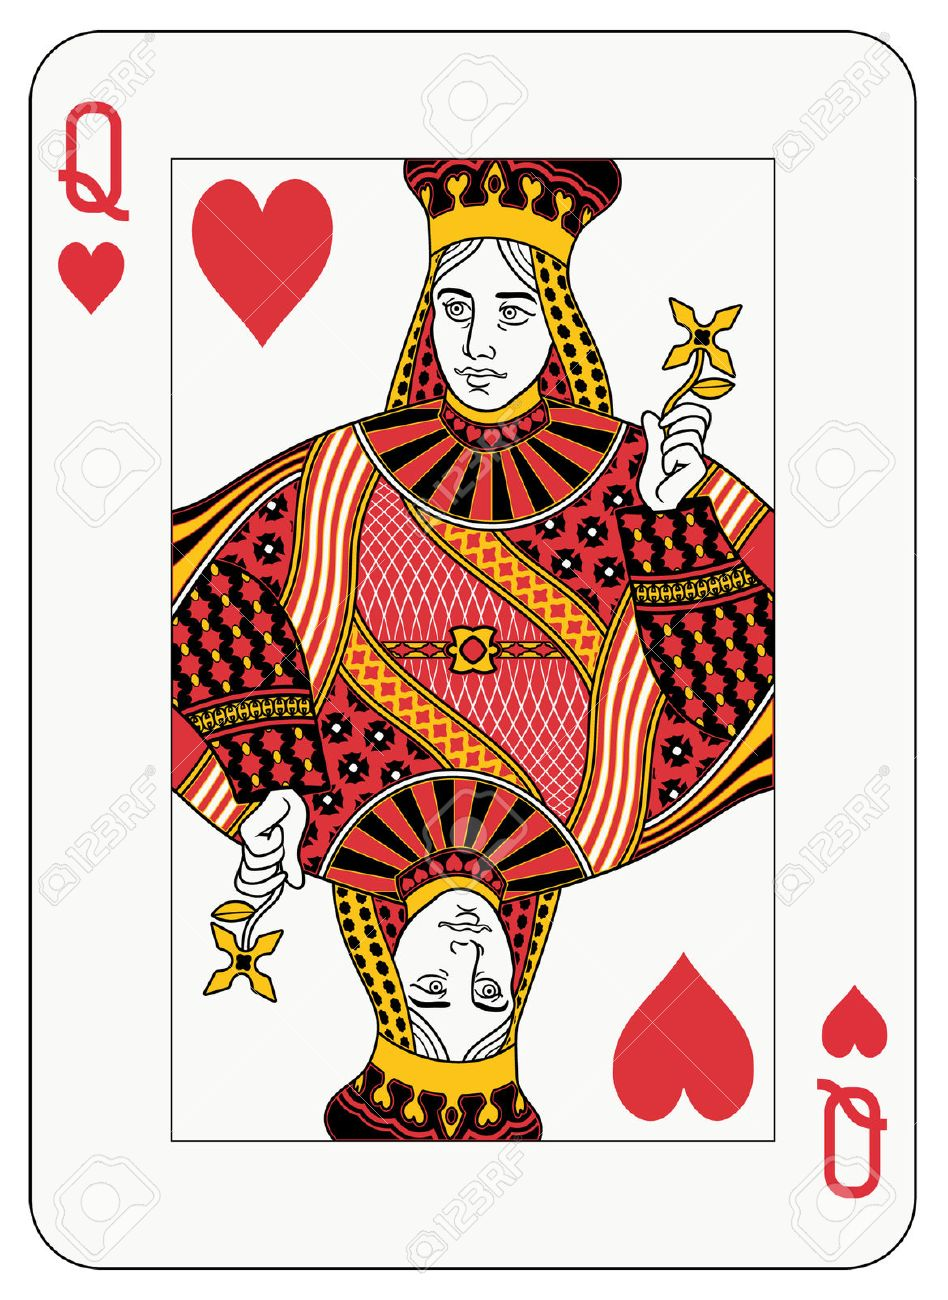 Queen of hearts playing card Stock Photo - 6051899